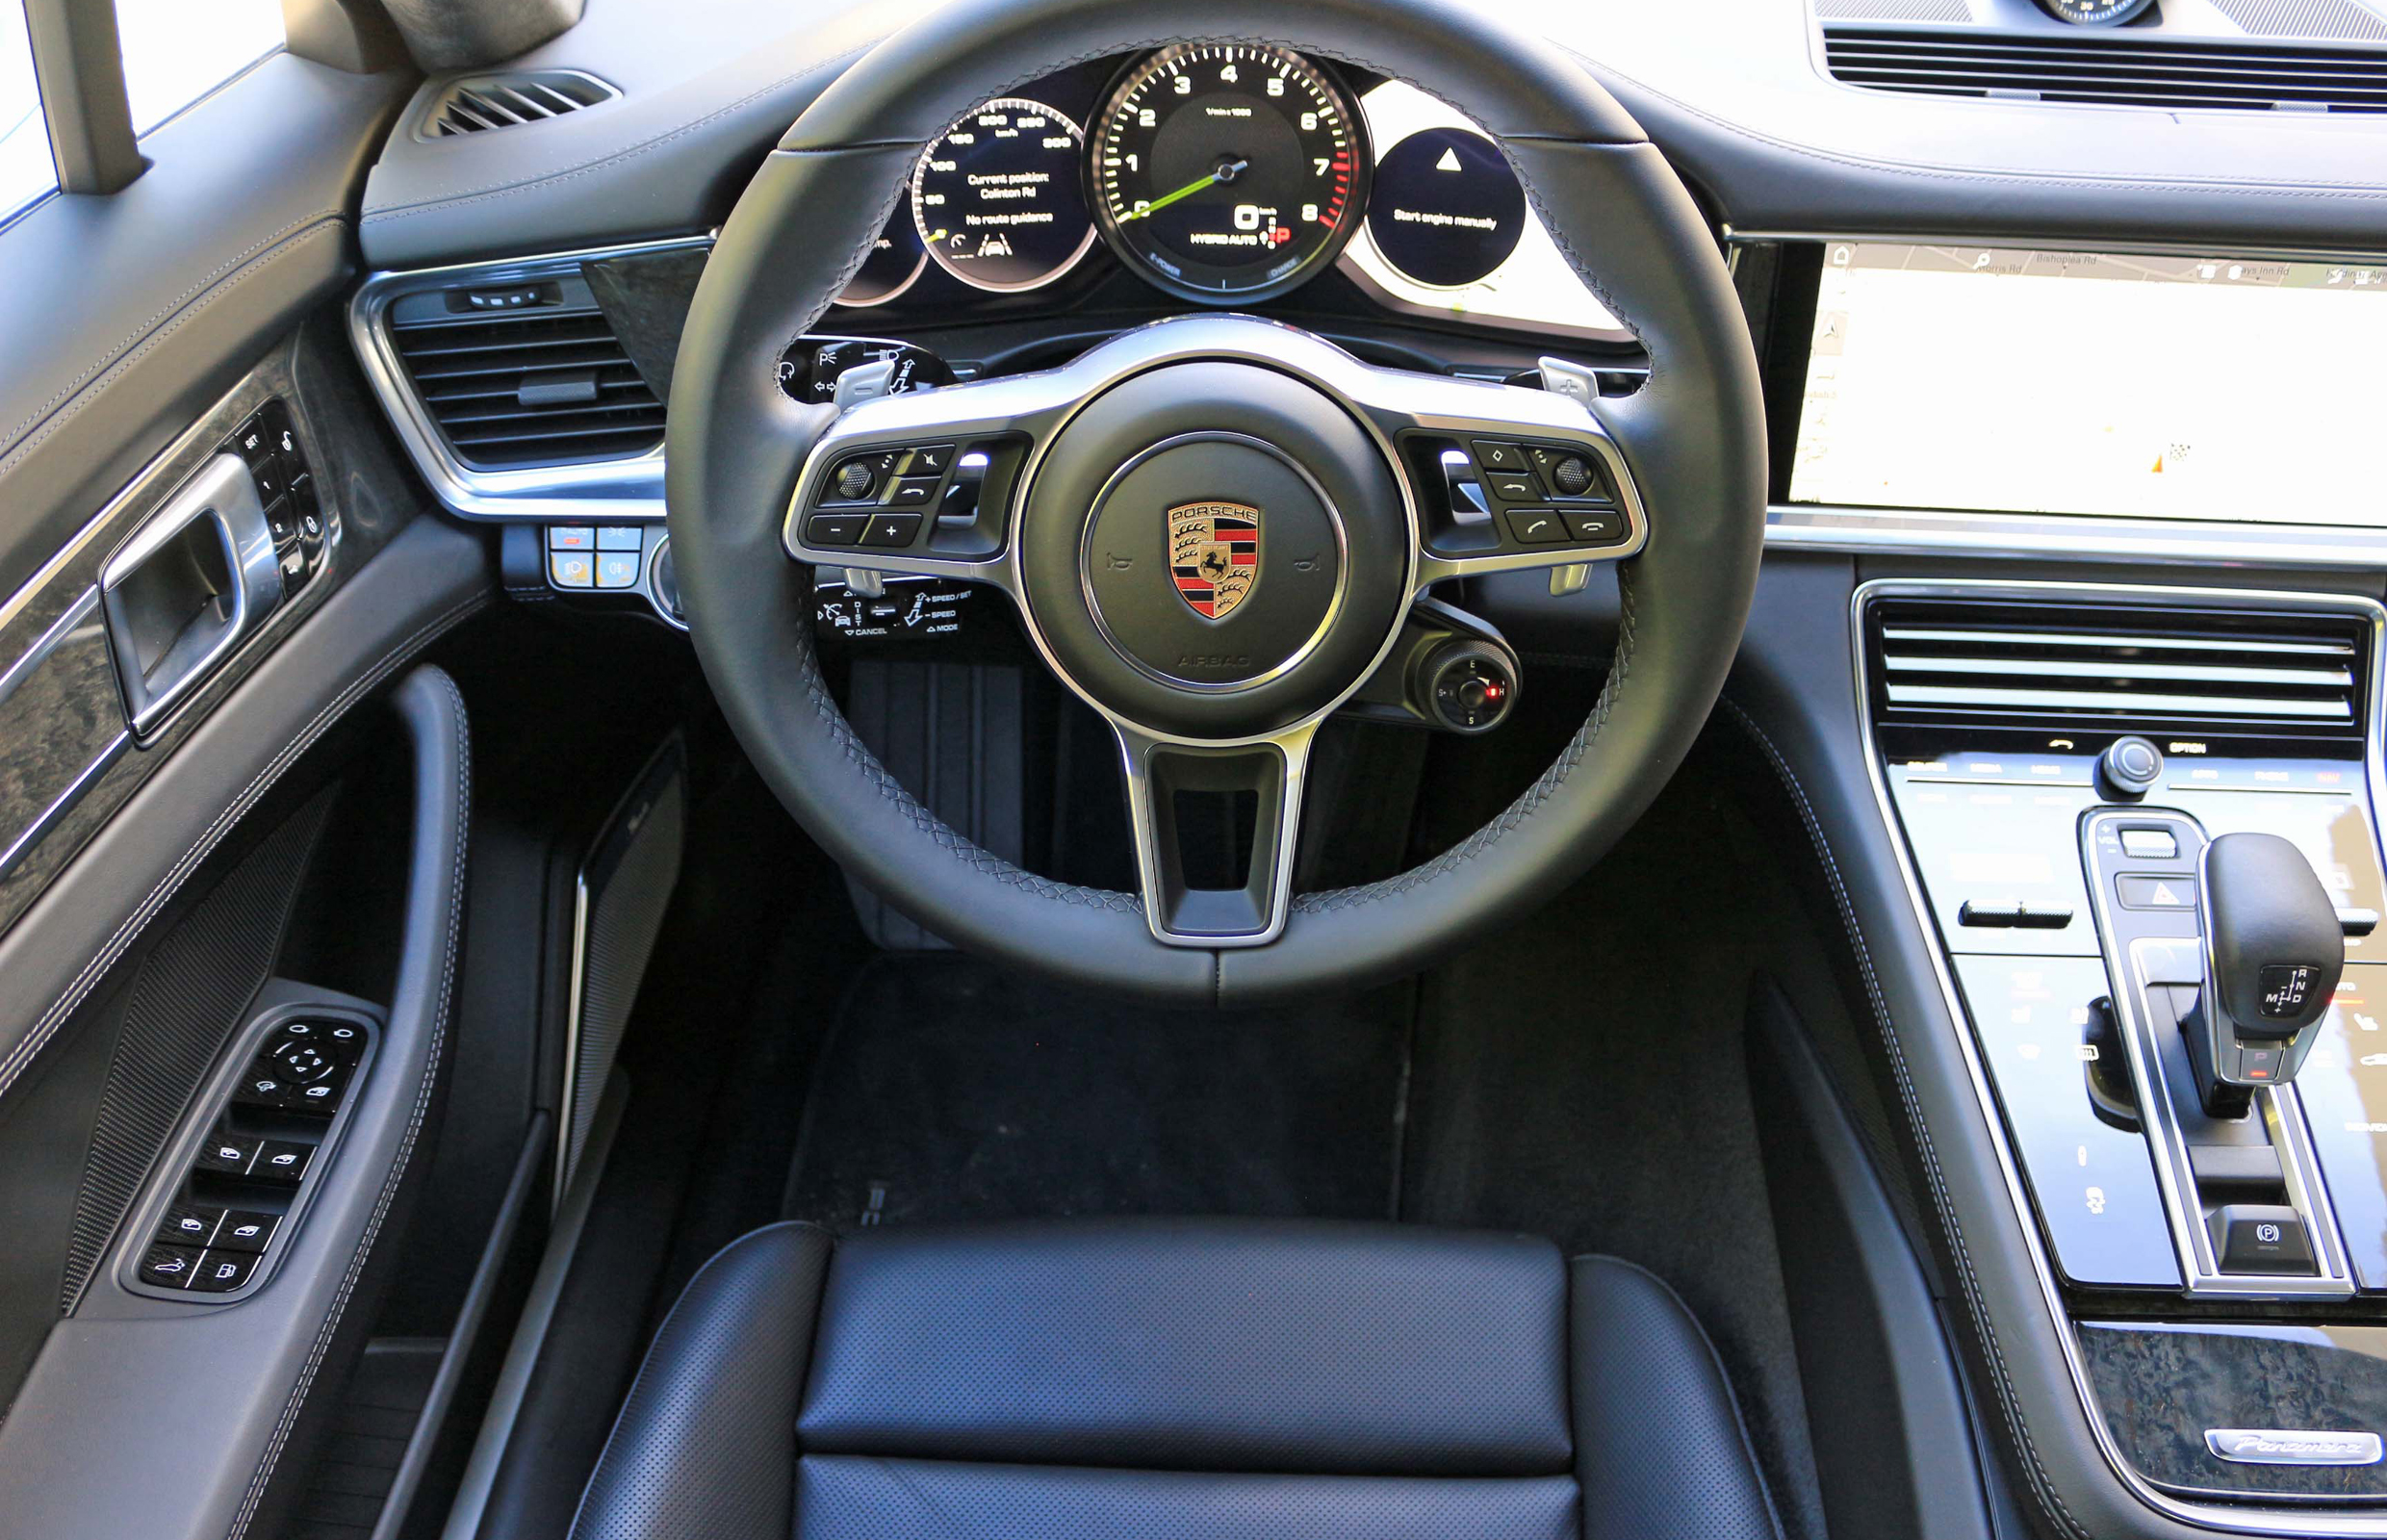 2018 Porsche Panamera 4 E Hybrid Interior Cockpit (Photo 8 of 10)